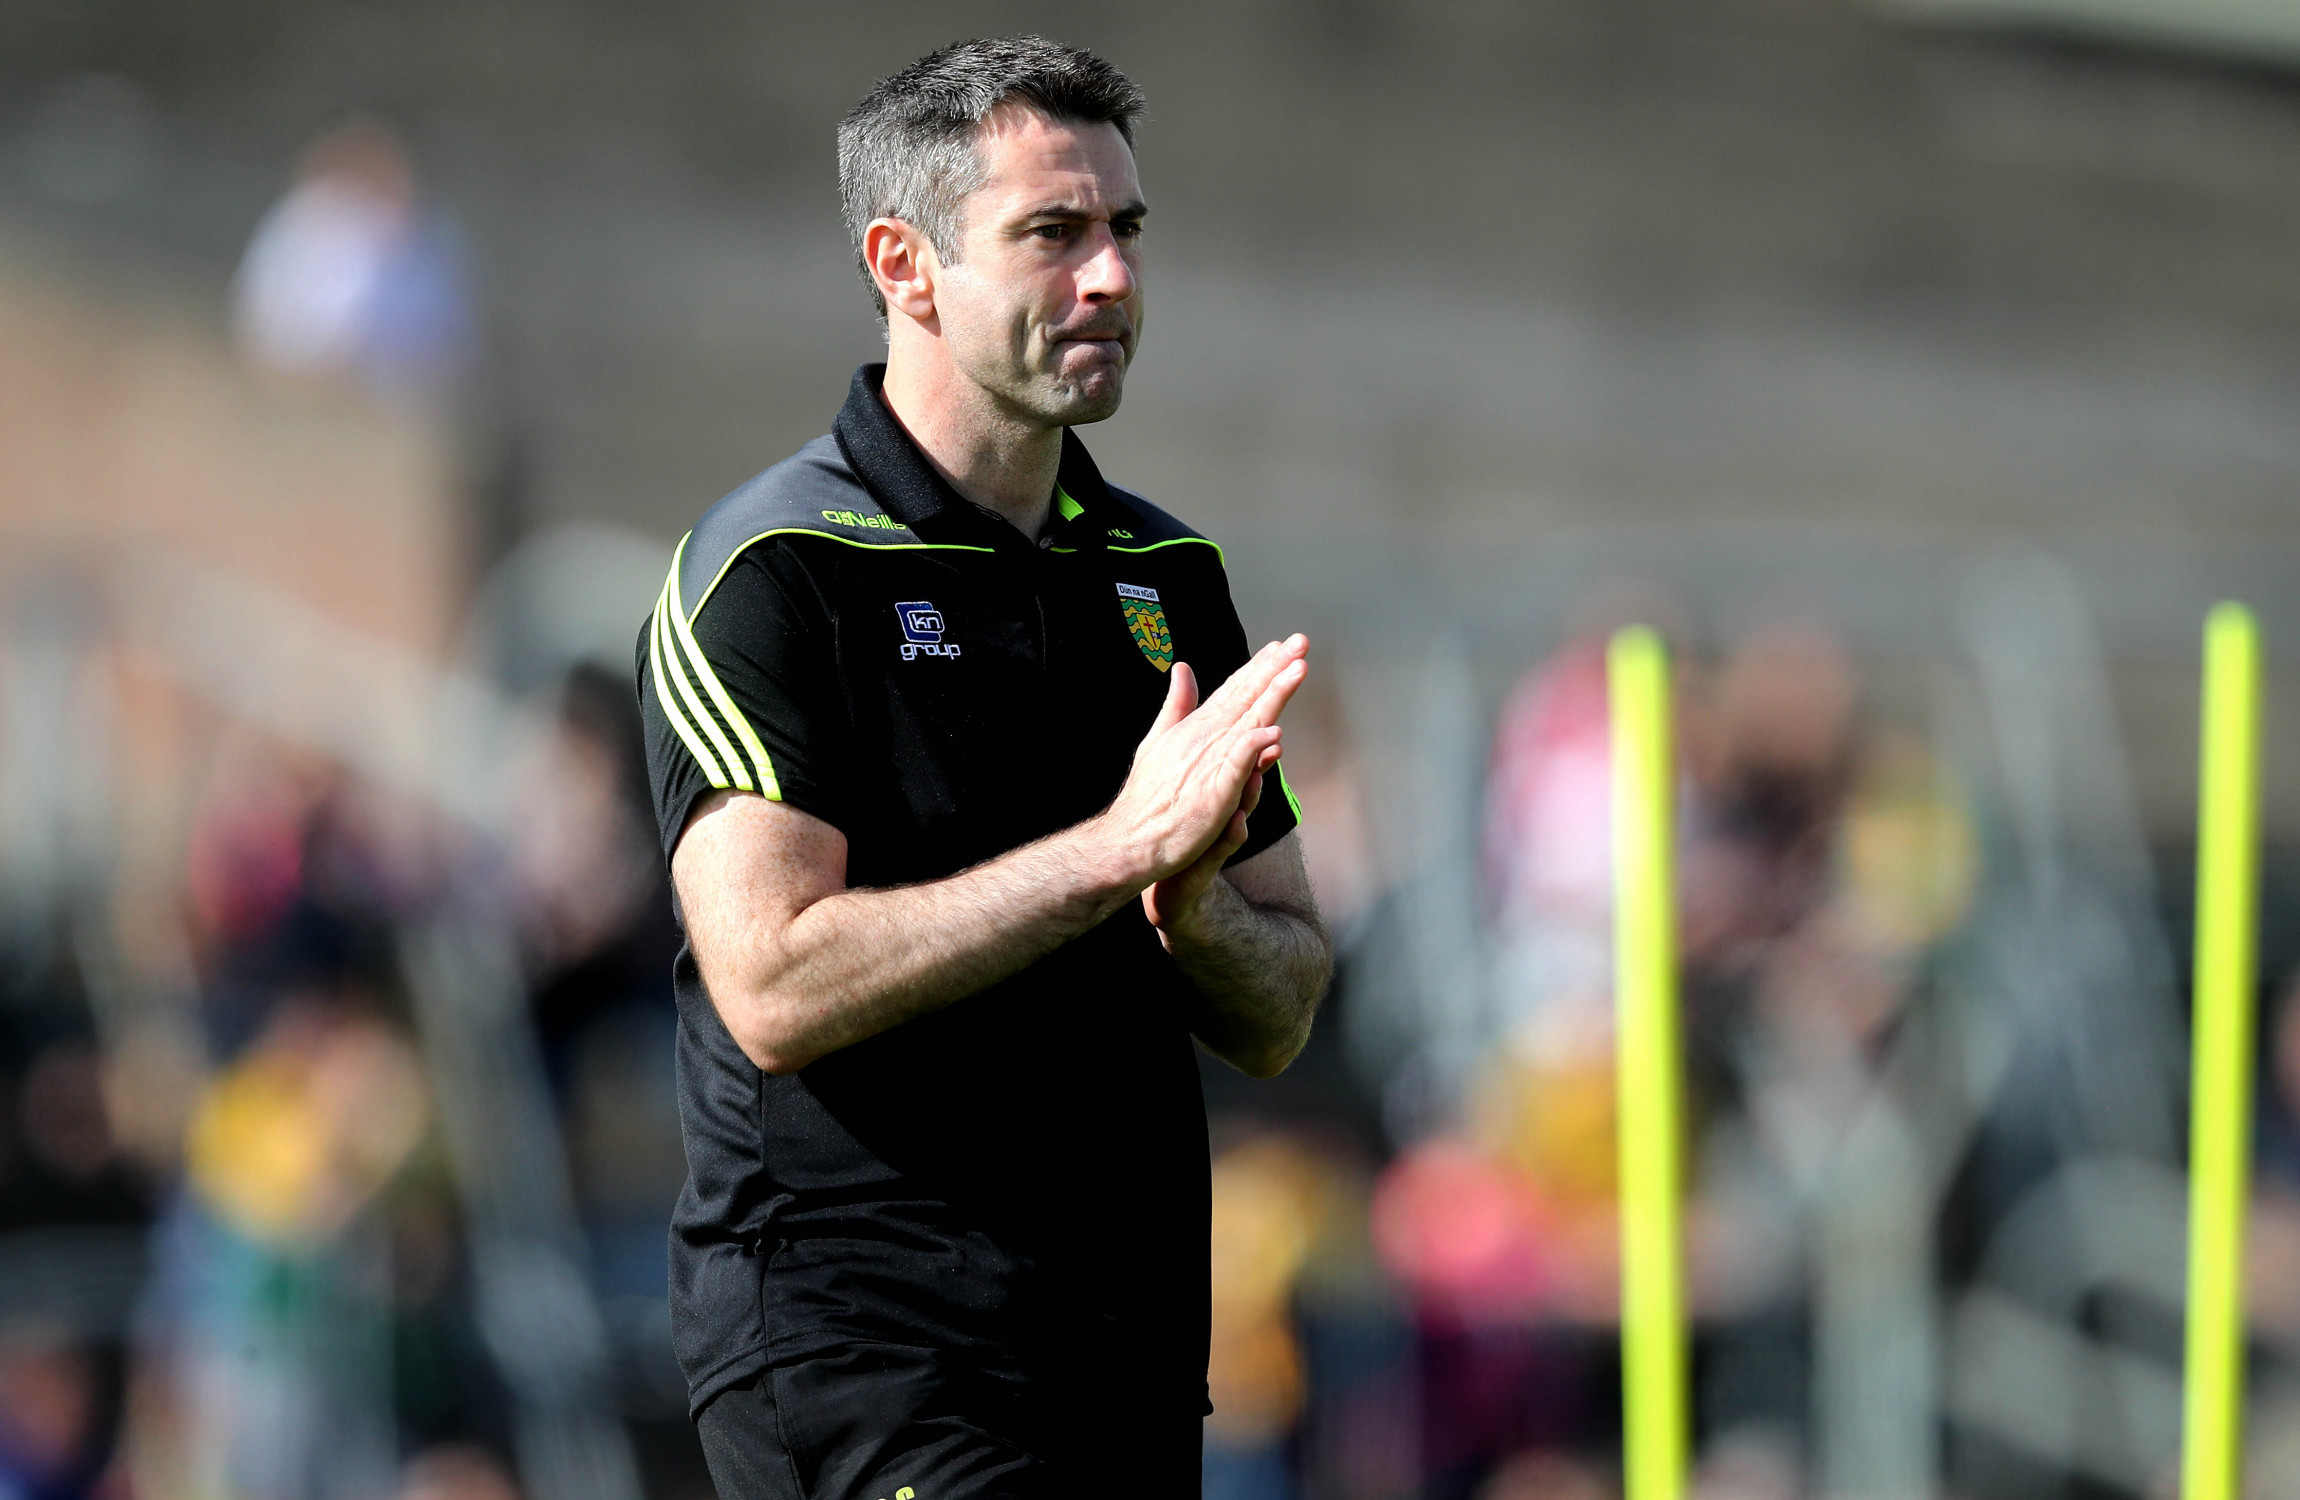 Fermanagh announce Rory Gallagher as their new senior football manager